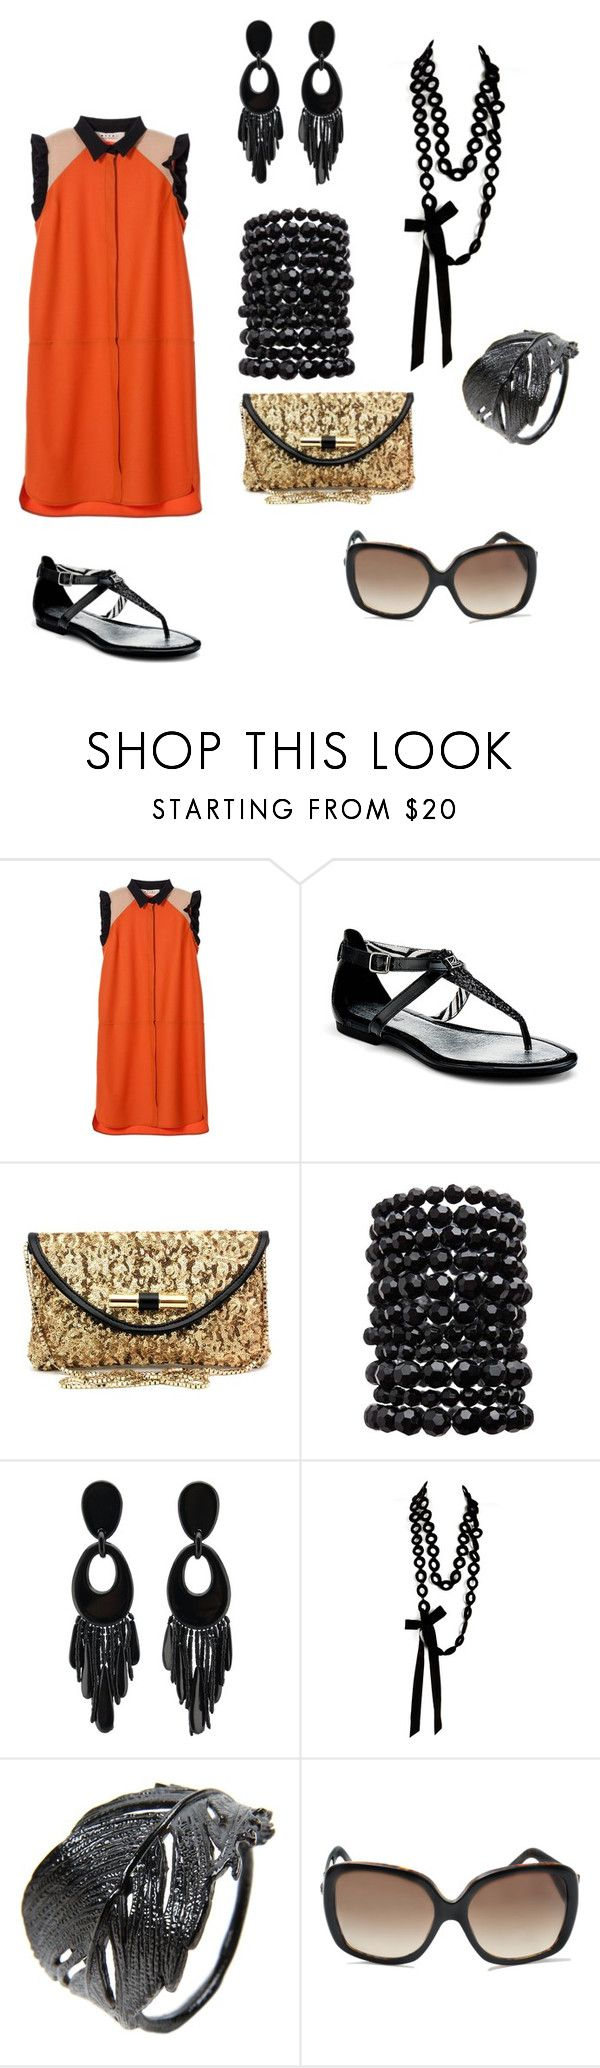 """Untitled #223"" by maria-rosa-pallones ❤ liked on Polyvore featuring Marni, Sperry, Jimmy Choo, Pieces, Monies, Sally Phillips, Alex Monroe and Versace"